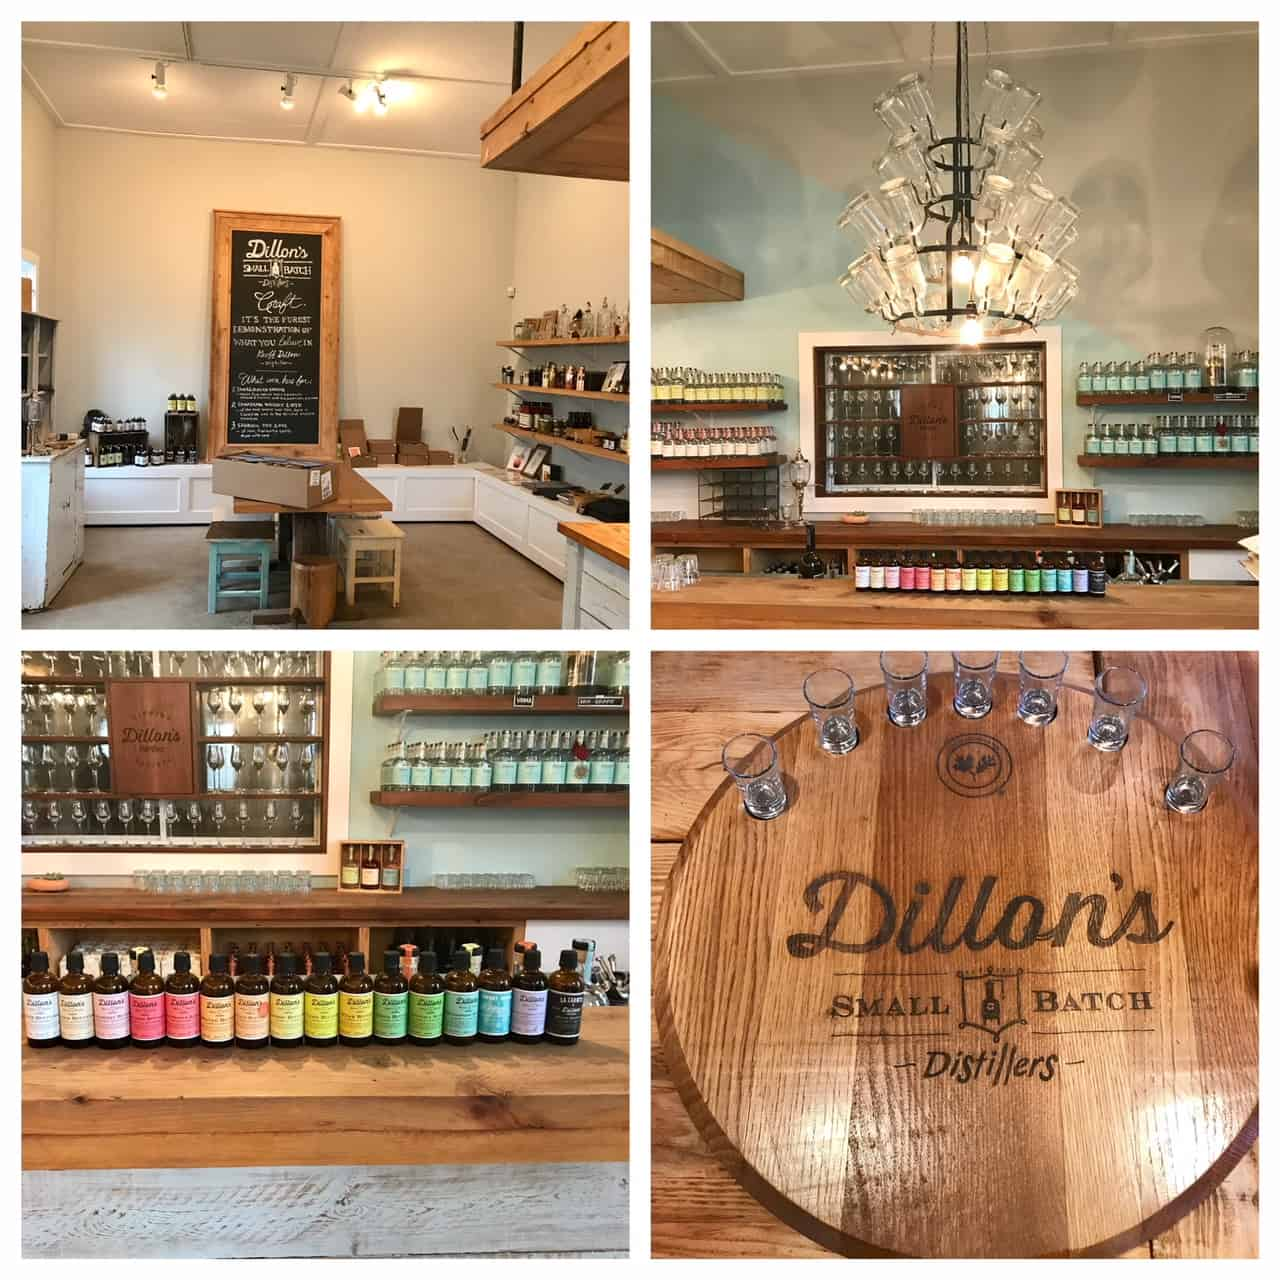 Collage of images from Dillons Distillery